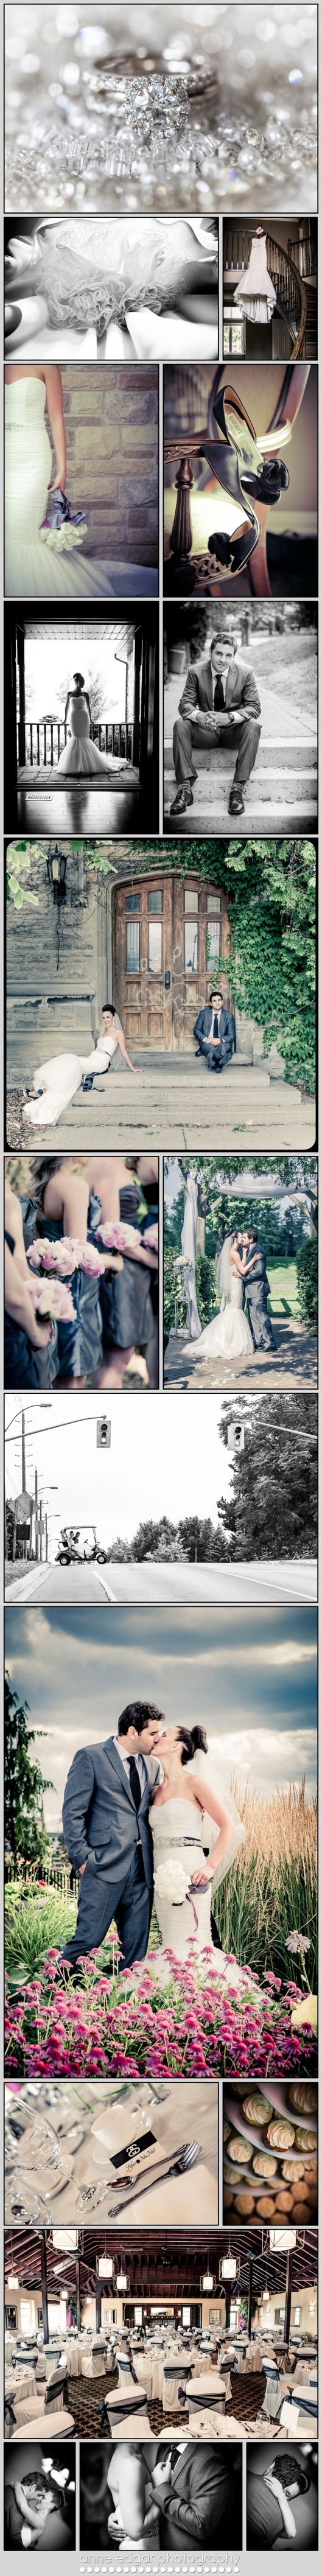 Guelph Ontario wedding photography, country club wedding